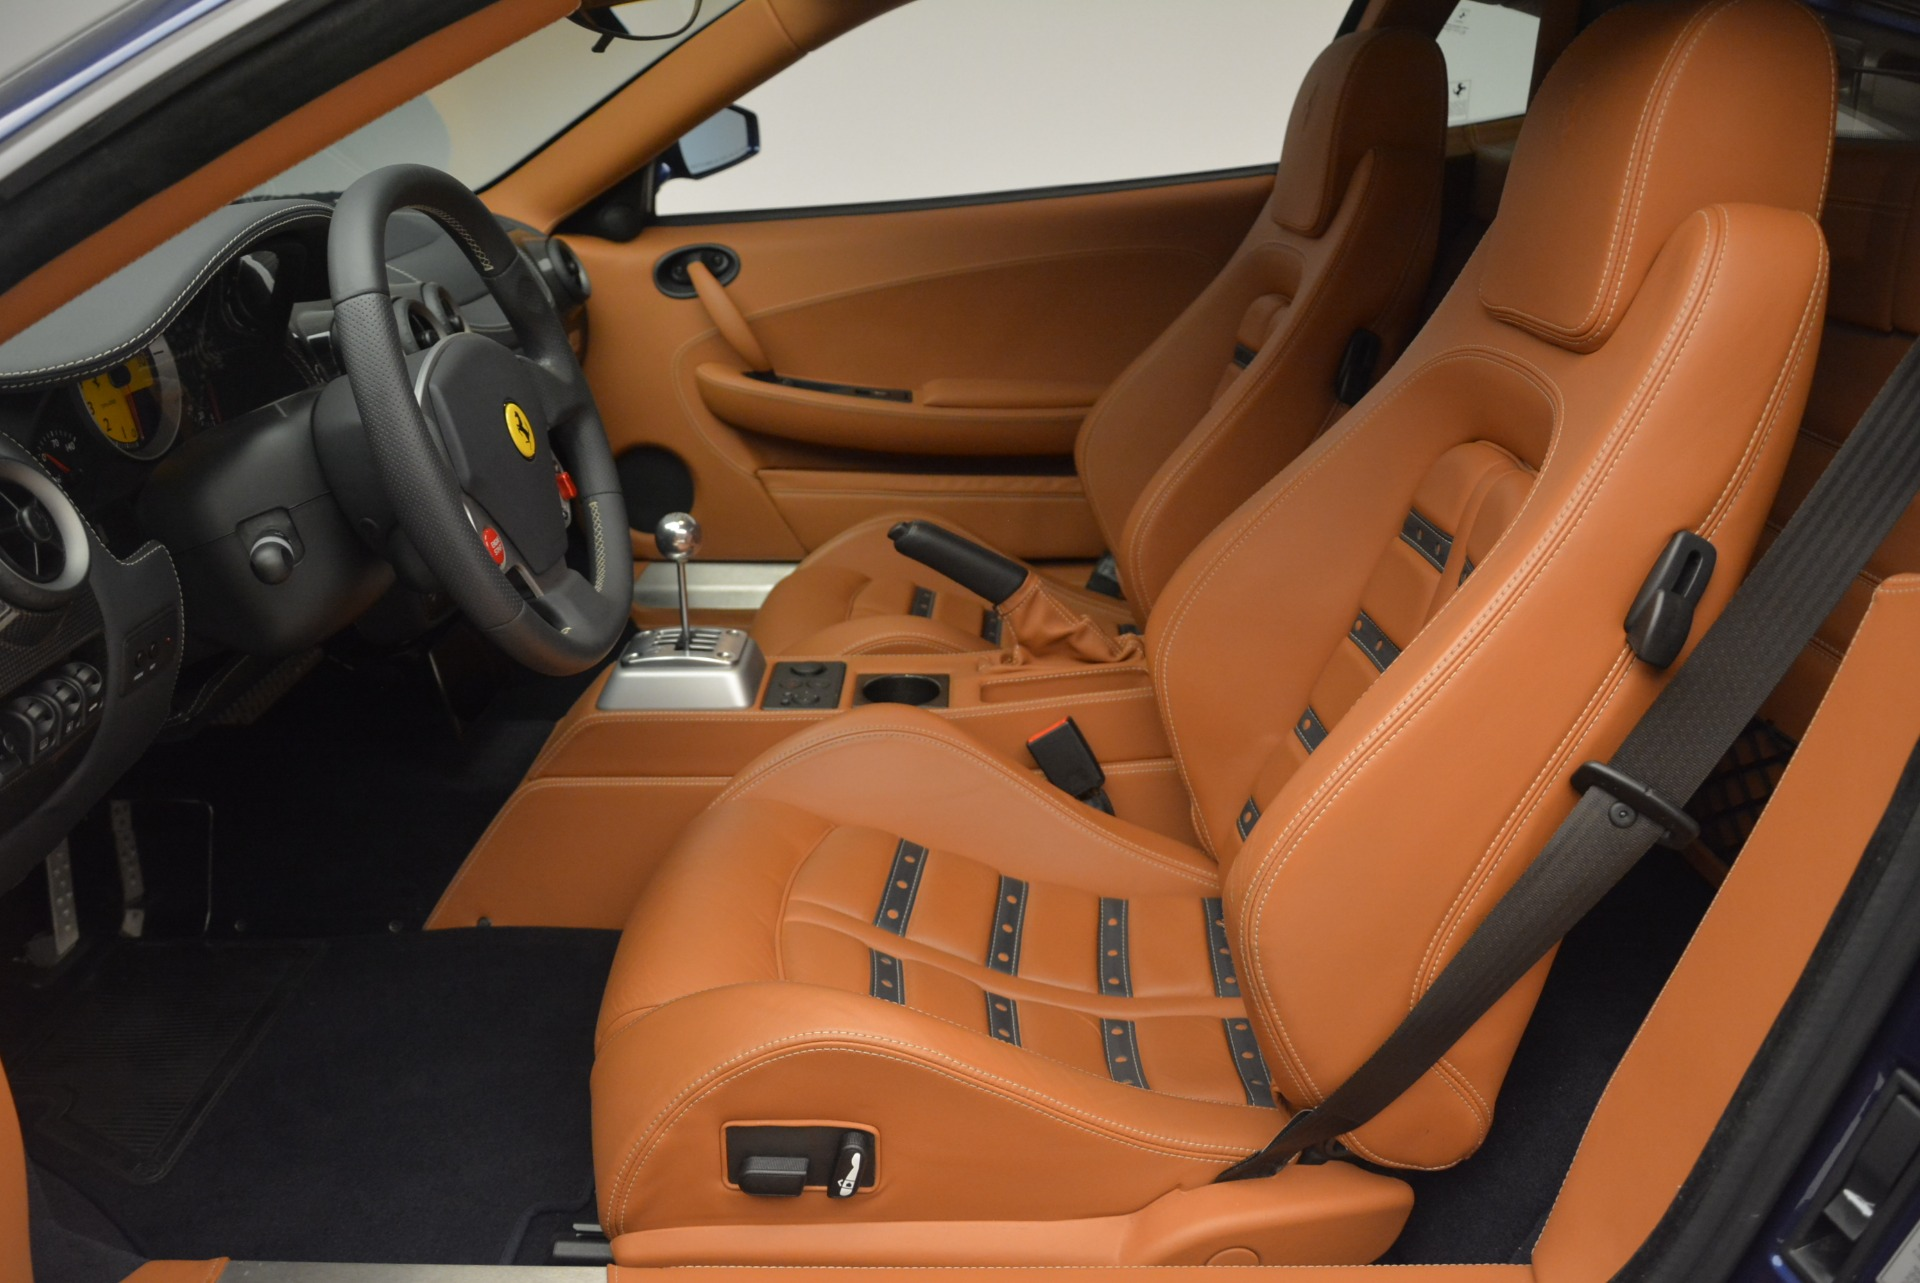 Used 2009 Ferrari F430 6-Speed Manual For Sale In Greenwich, CT 2466_p15